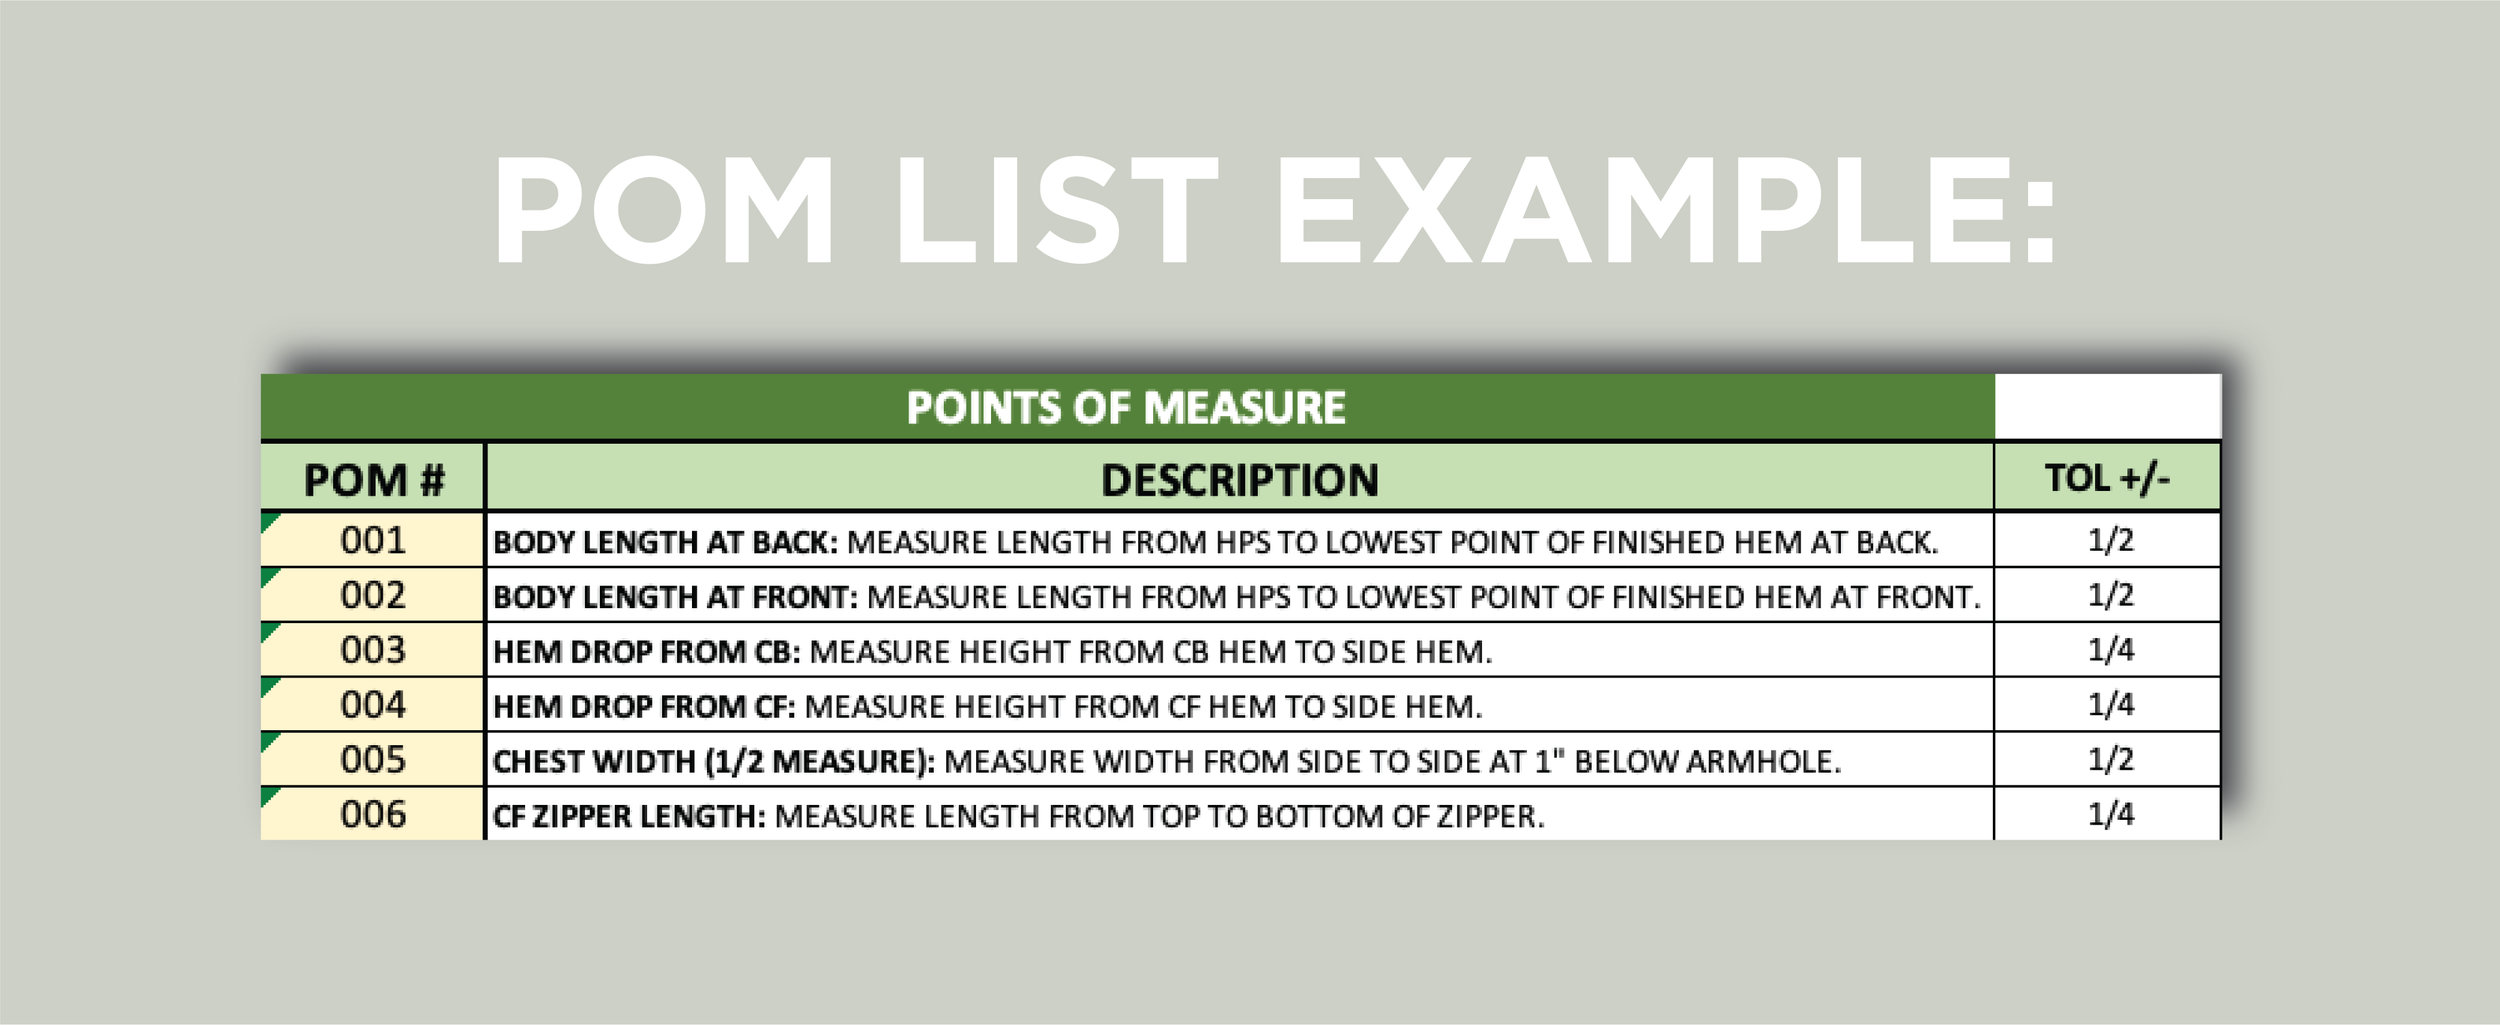 pom-list-example-points-of-measure.jpg